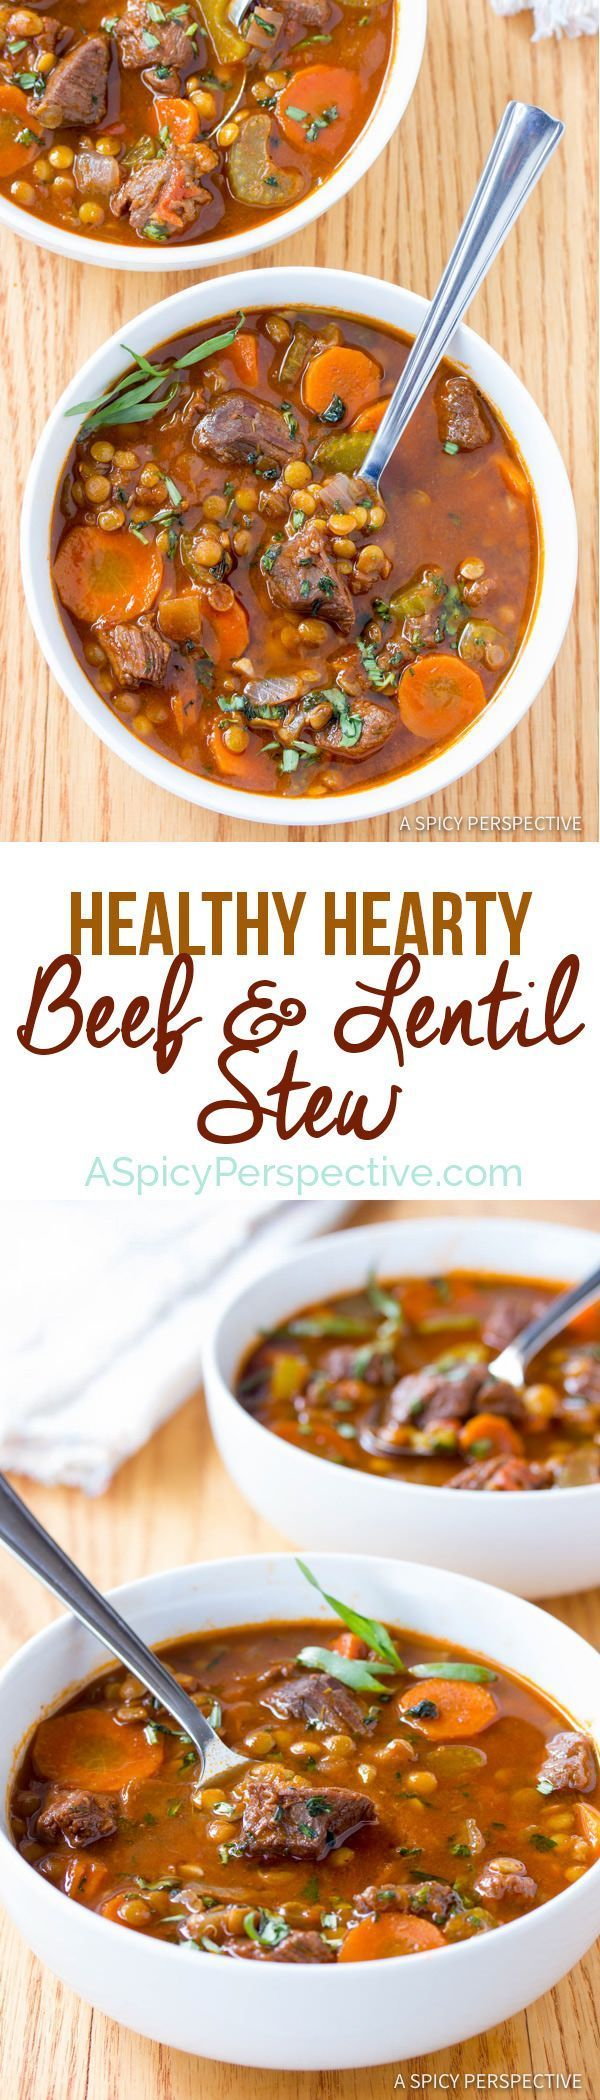 The Best Beef and Lentil Stew Recipe   http://ASpicyPerspective.com #healthy